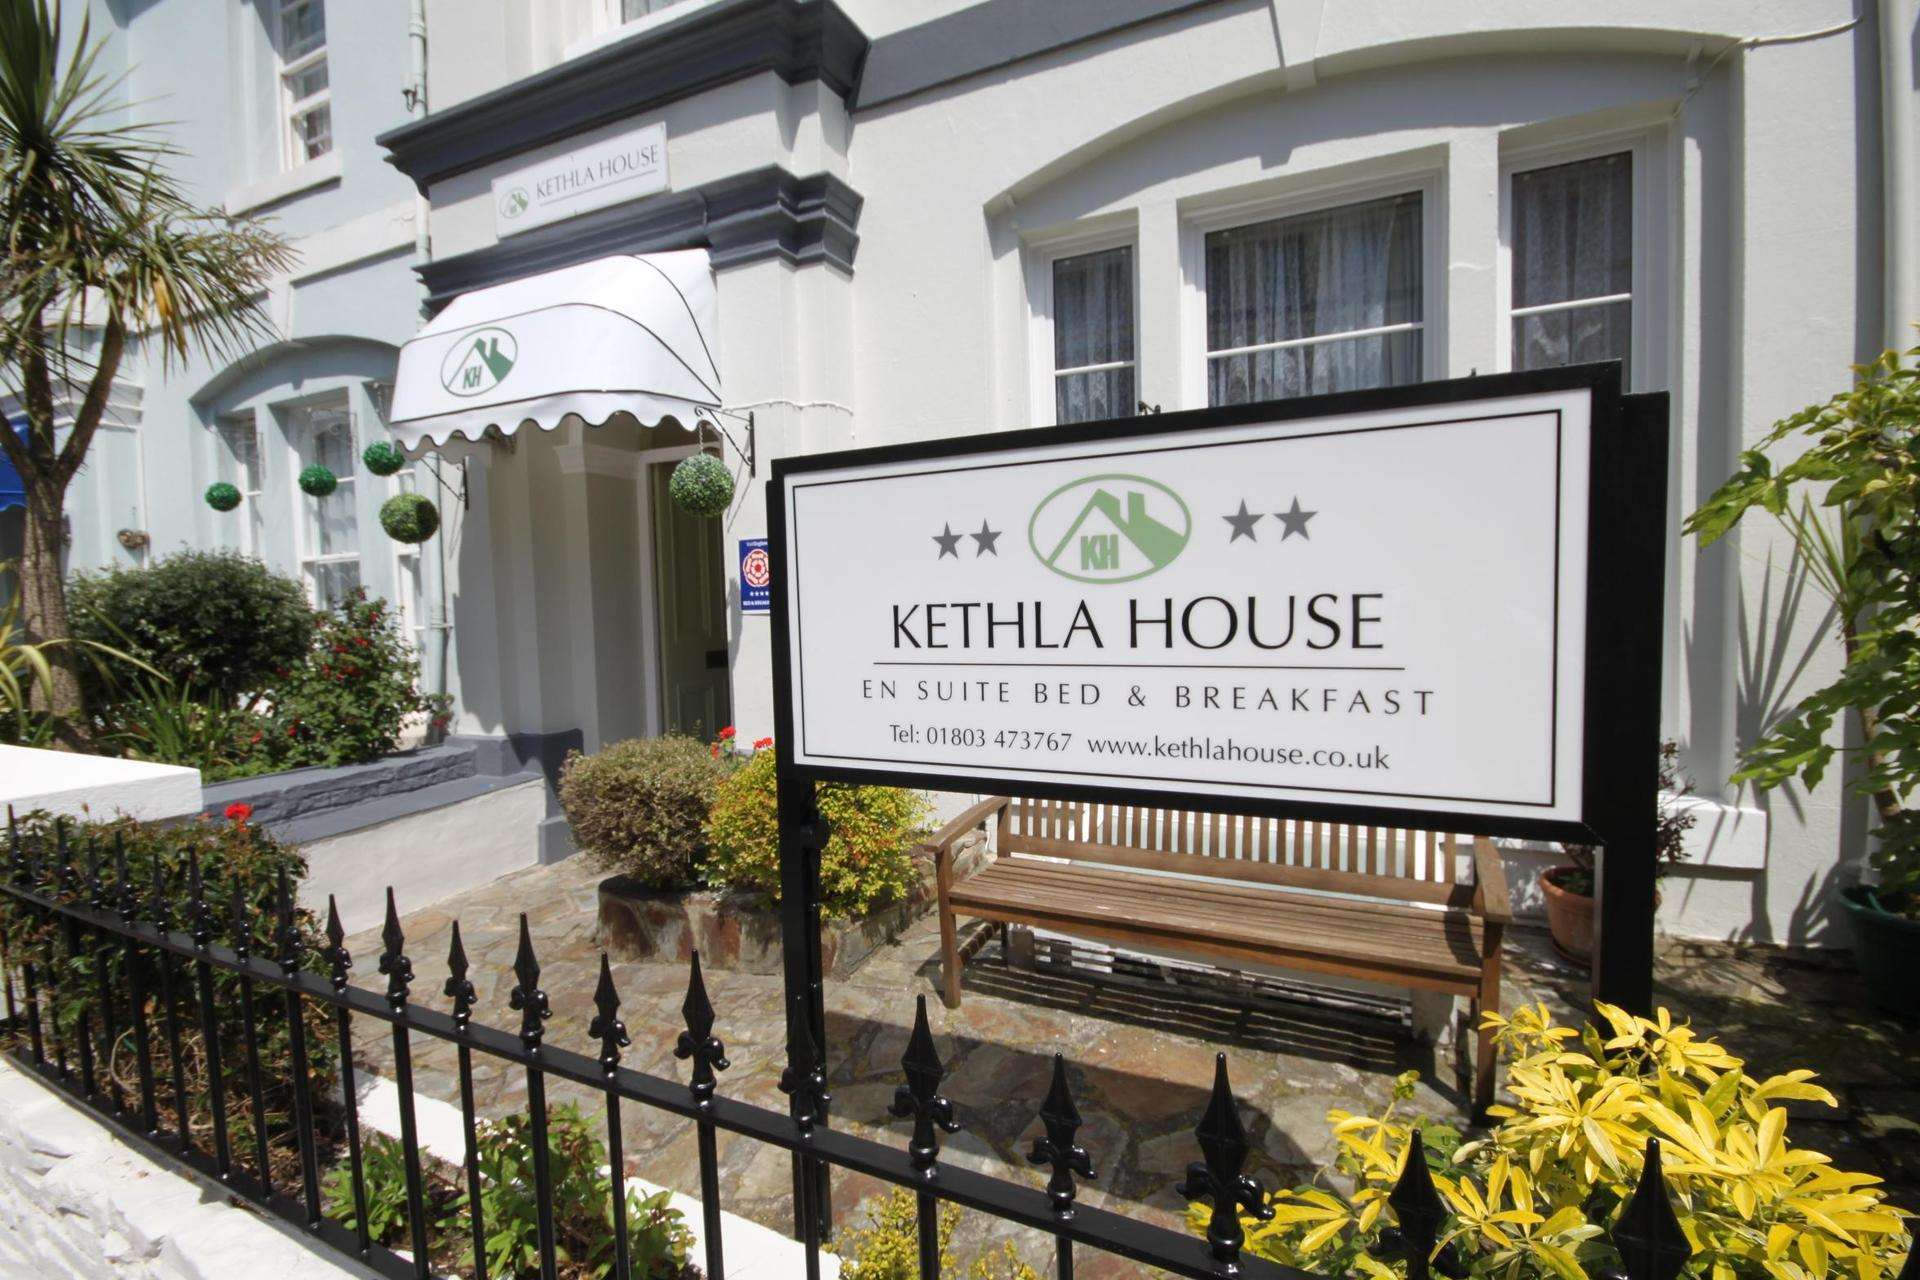 Kethla House Hotel in Paignton